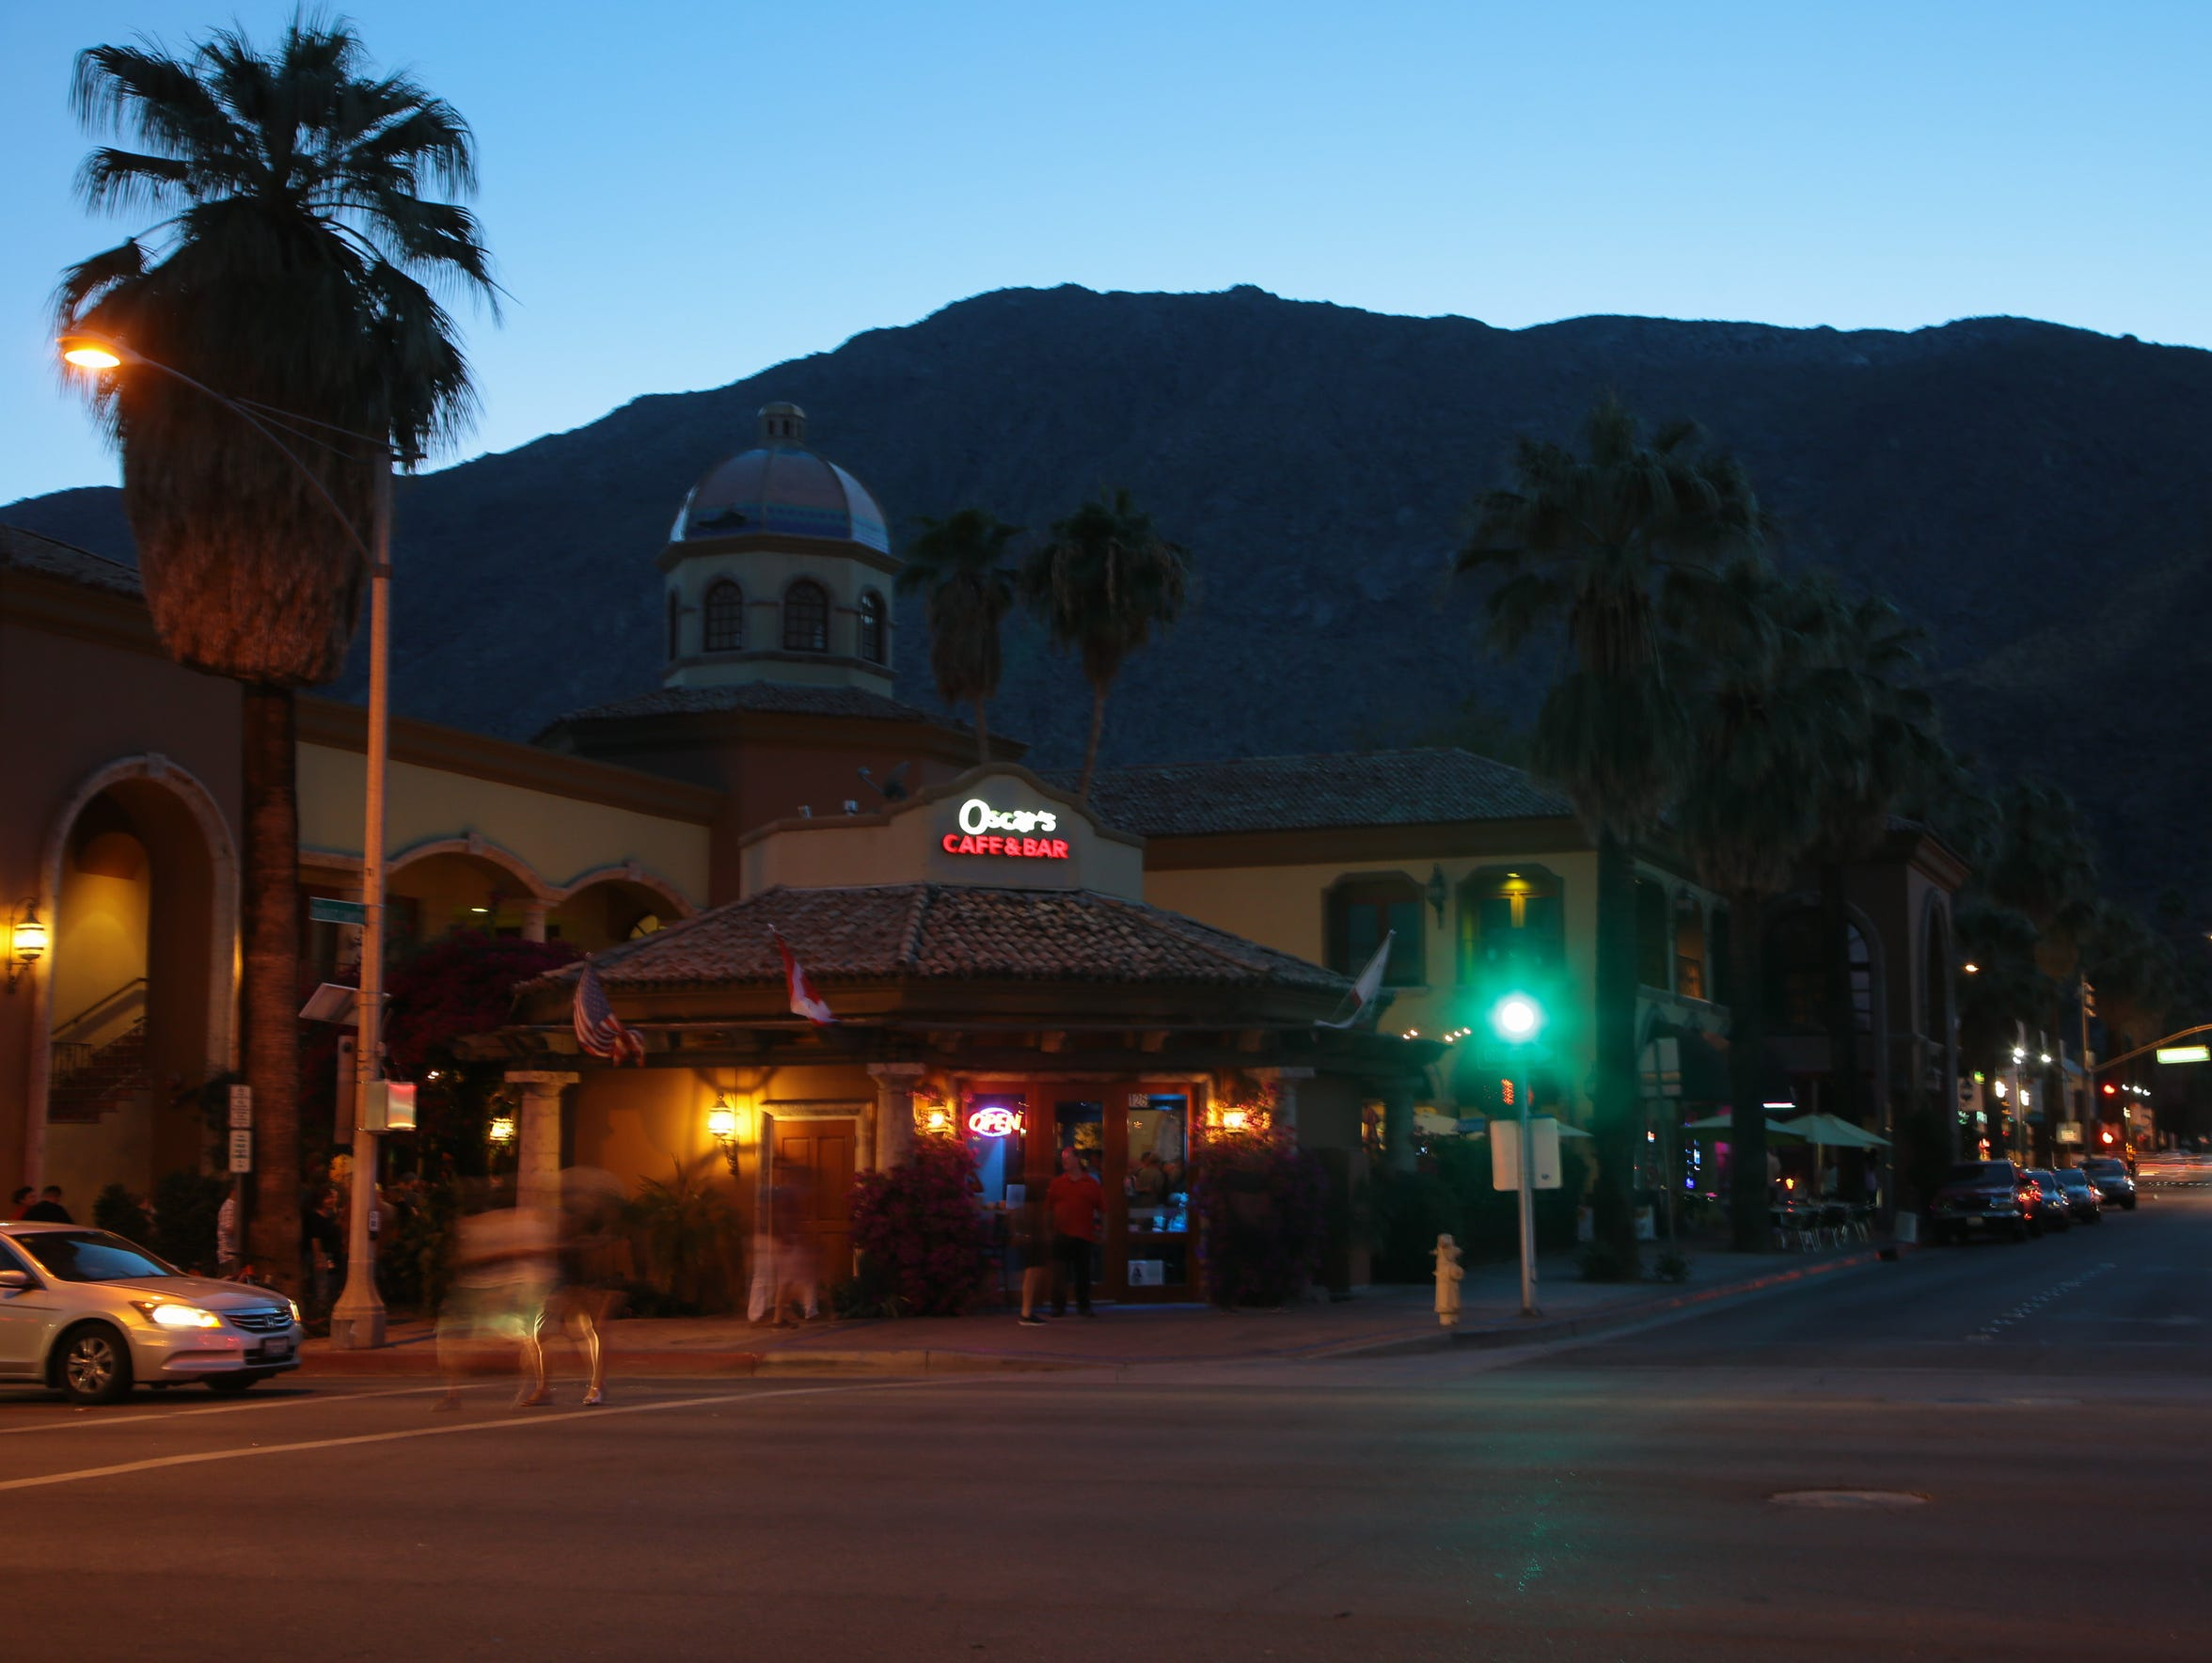 Oscar's Cafe and Bar, in downtown Palm Springs, holds